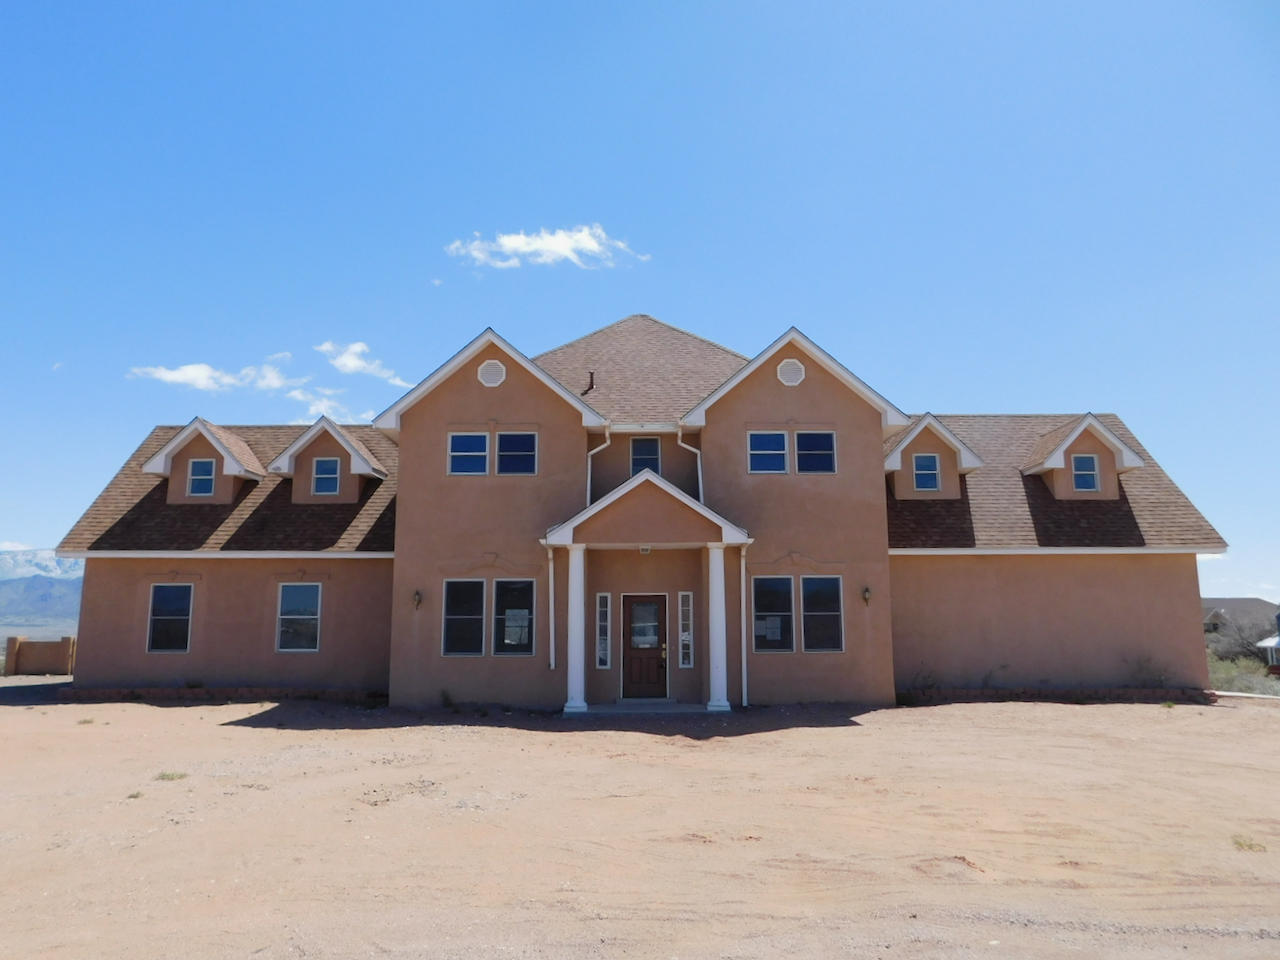 5516 Laredo Road NE, Rio Rancho, NM 87144 - Rio Rancho, NM real estate listing